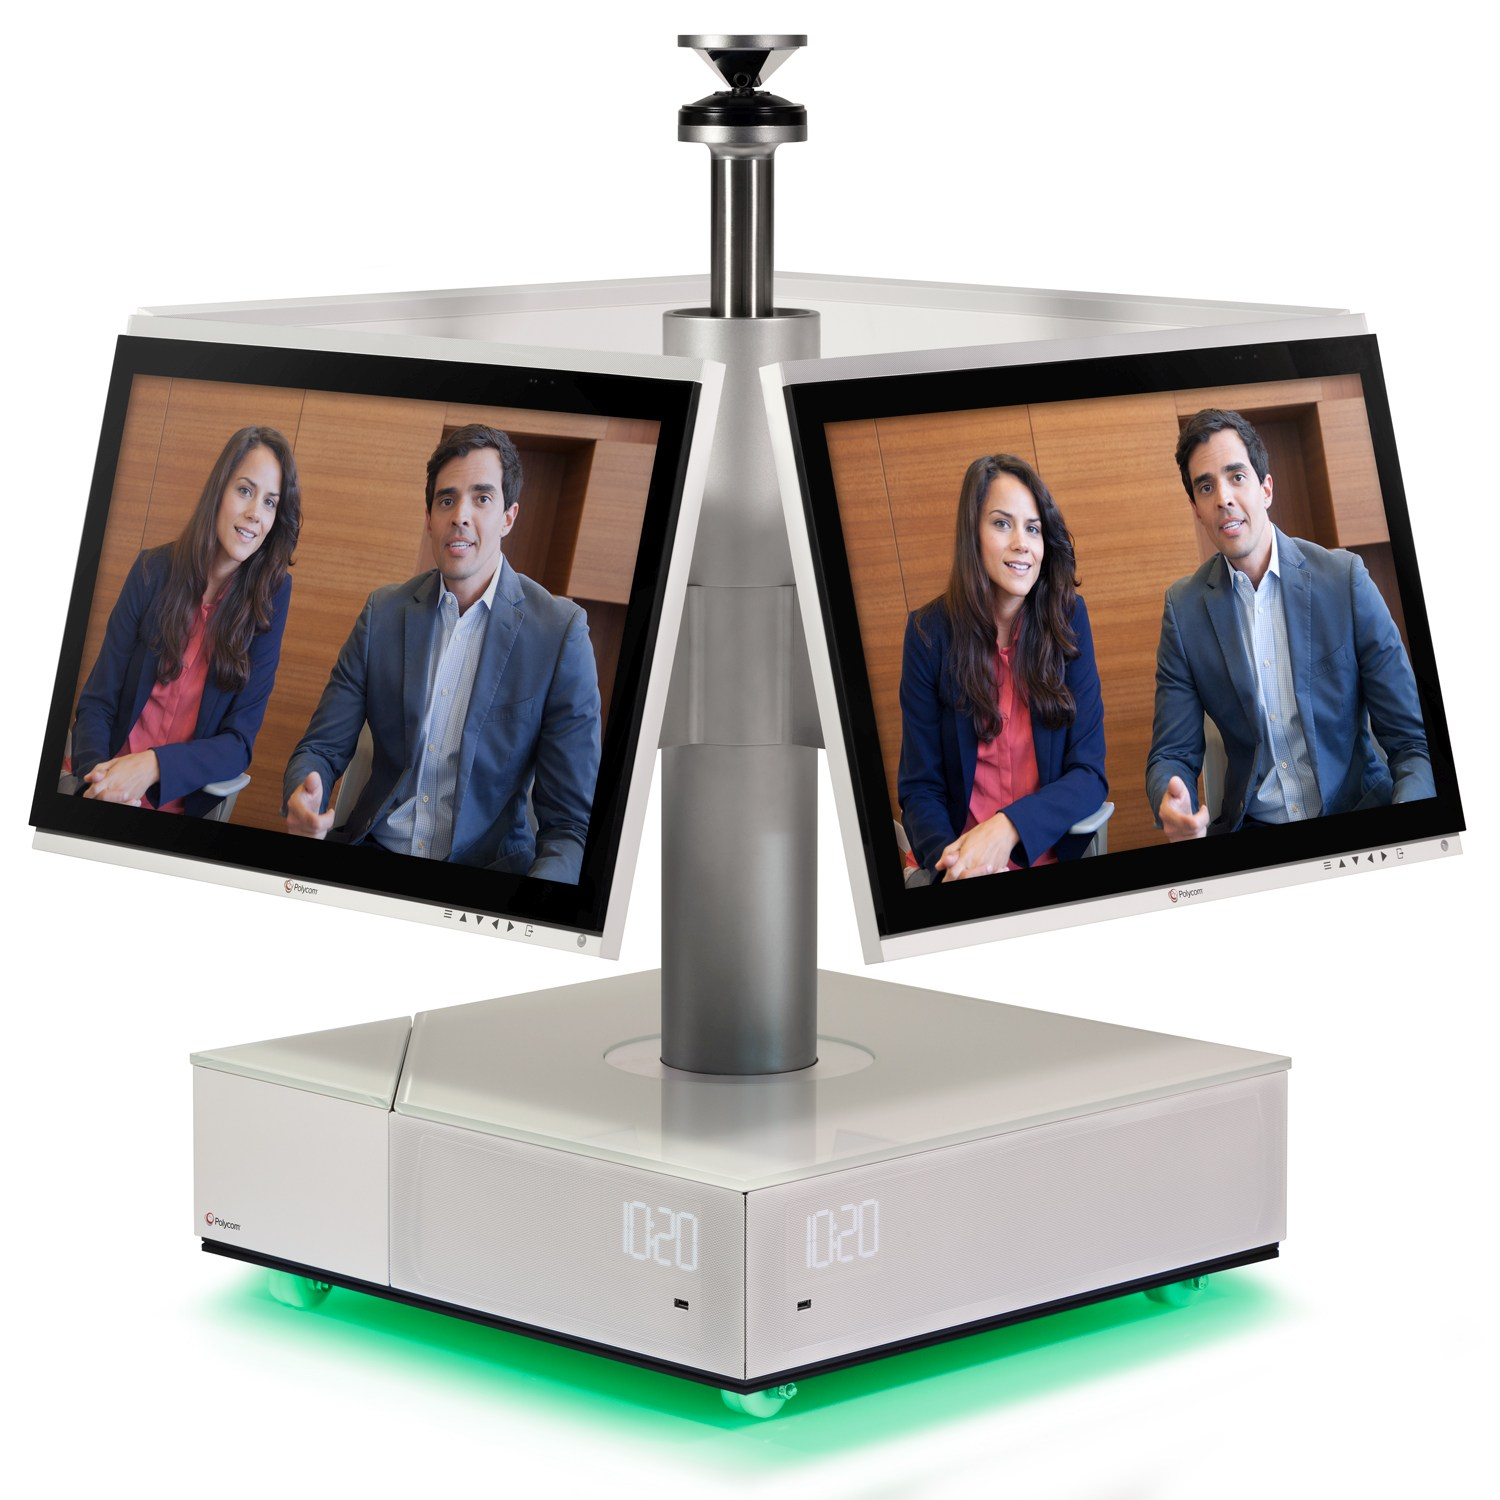 foto polycom Centro with 2 people on screen